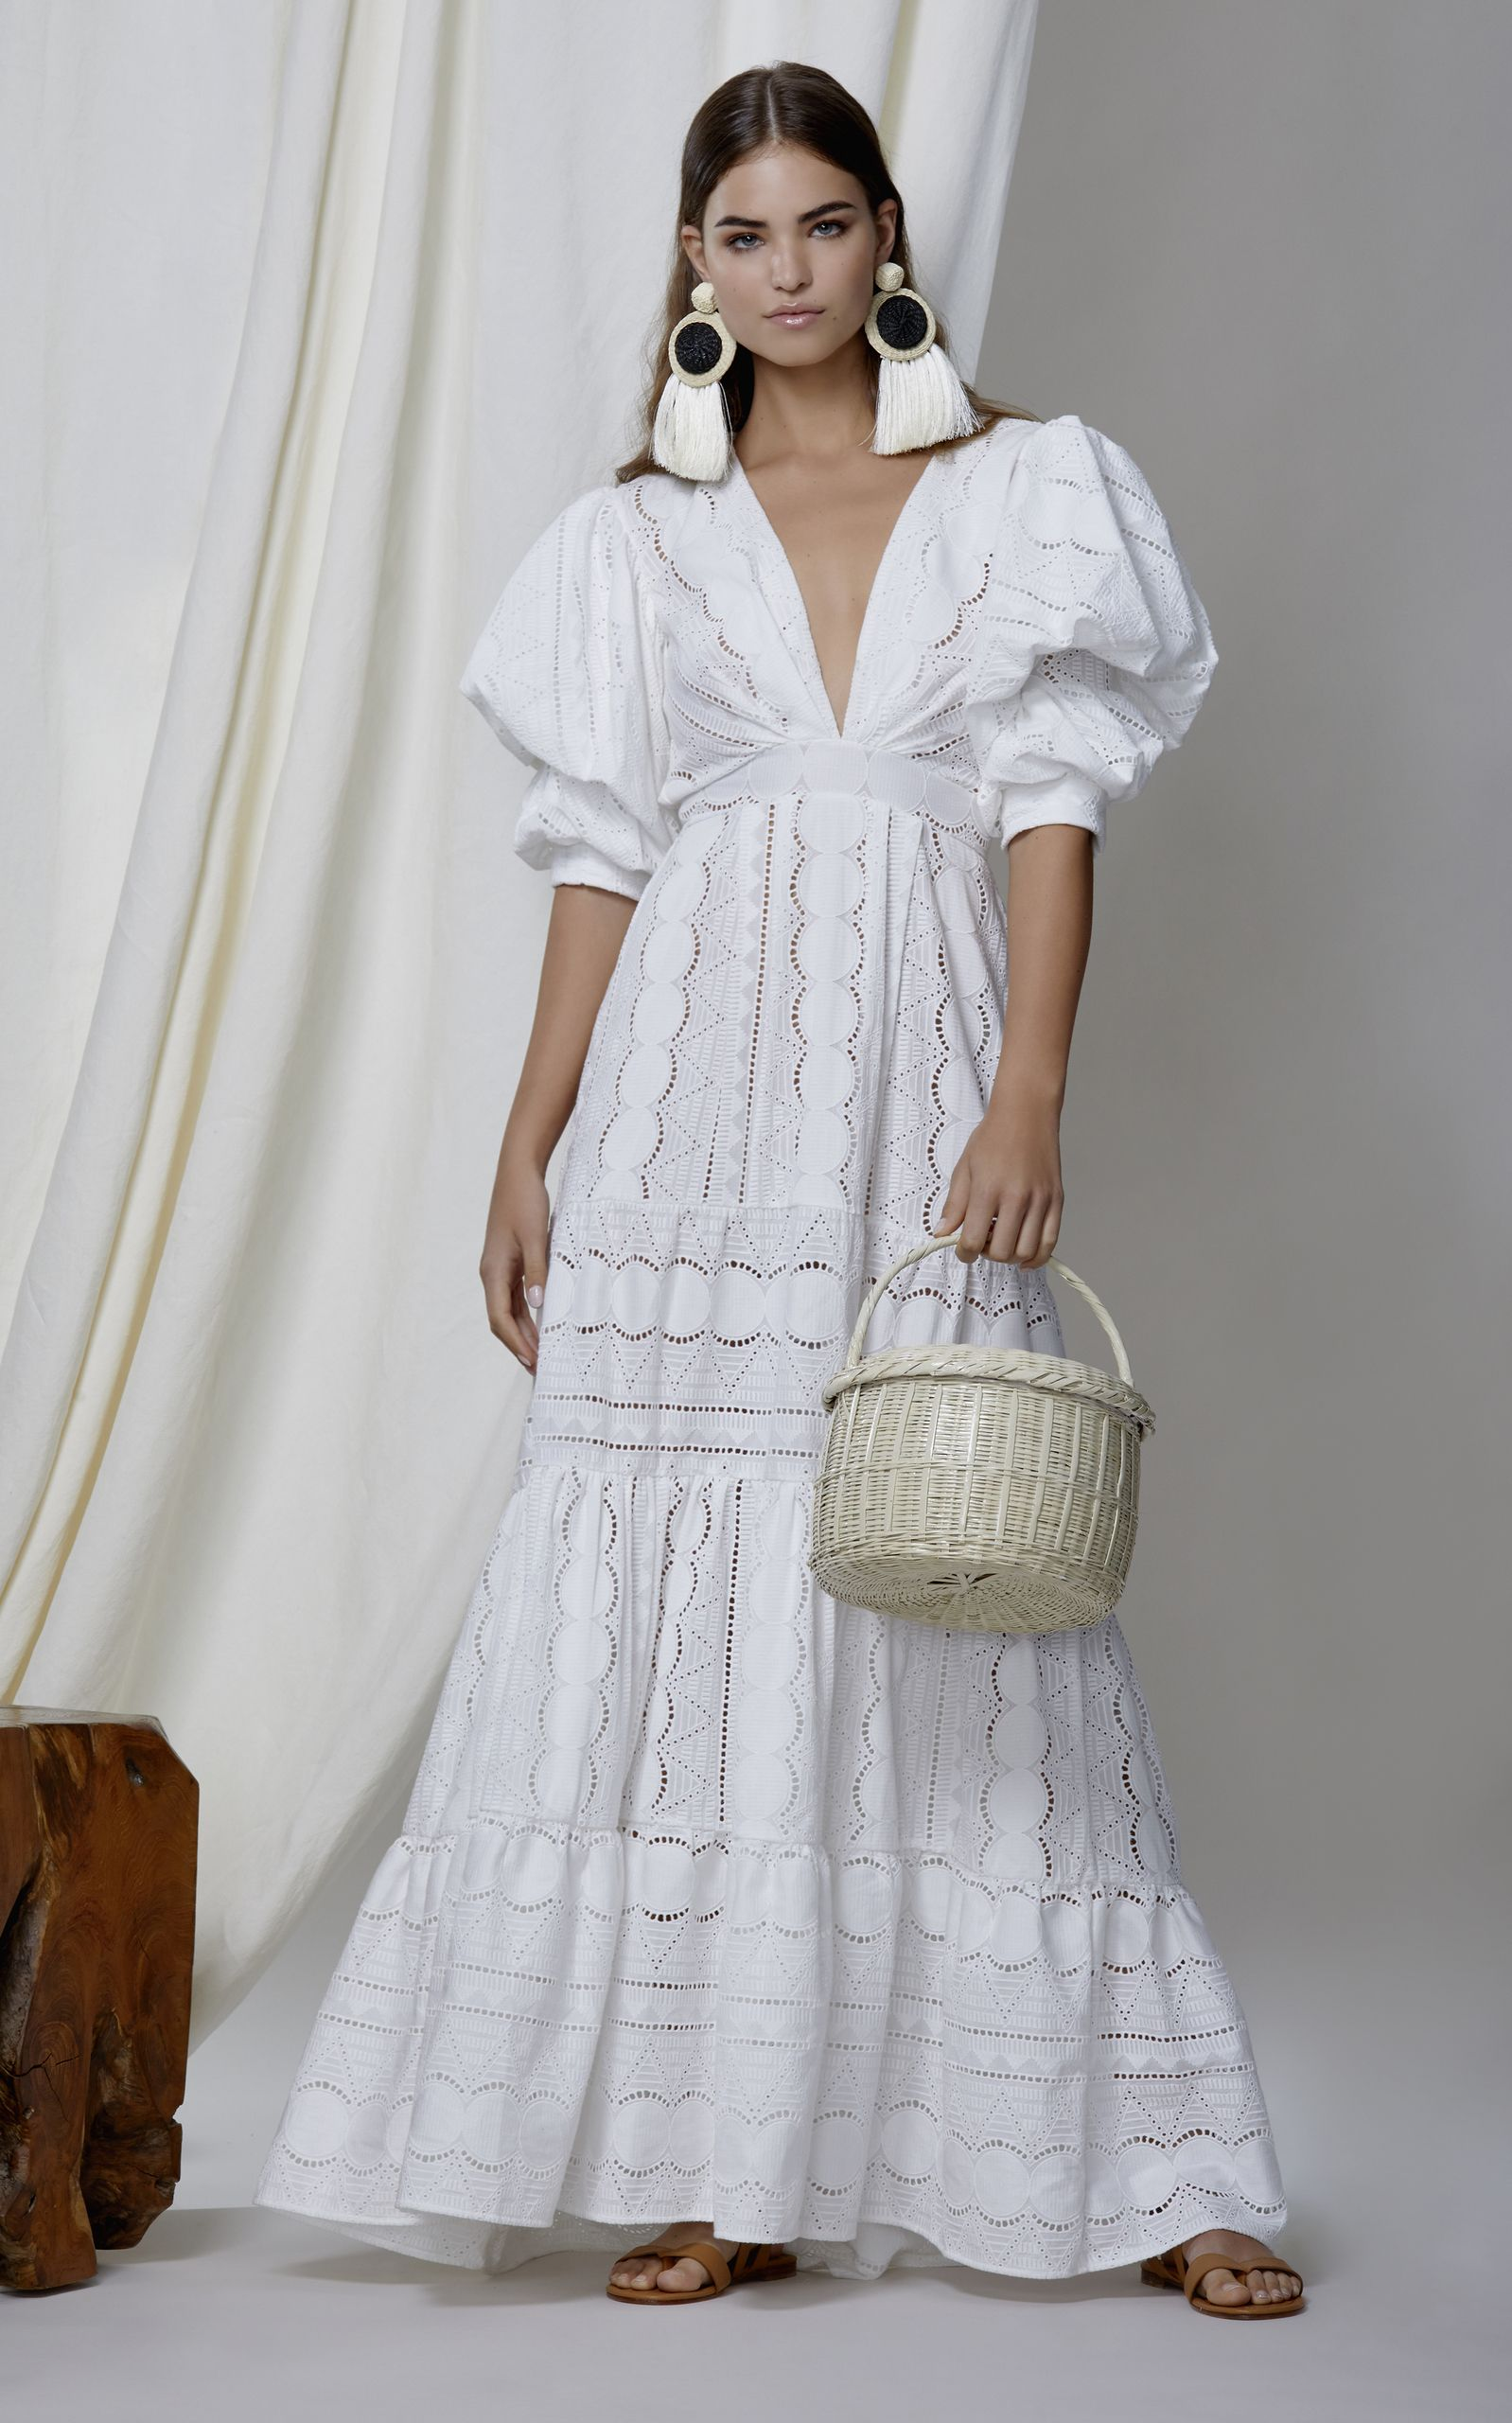 M\'O Exclusive Mademoiselle Sophie Cotton Eyelet Dress by JOHANNA ...